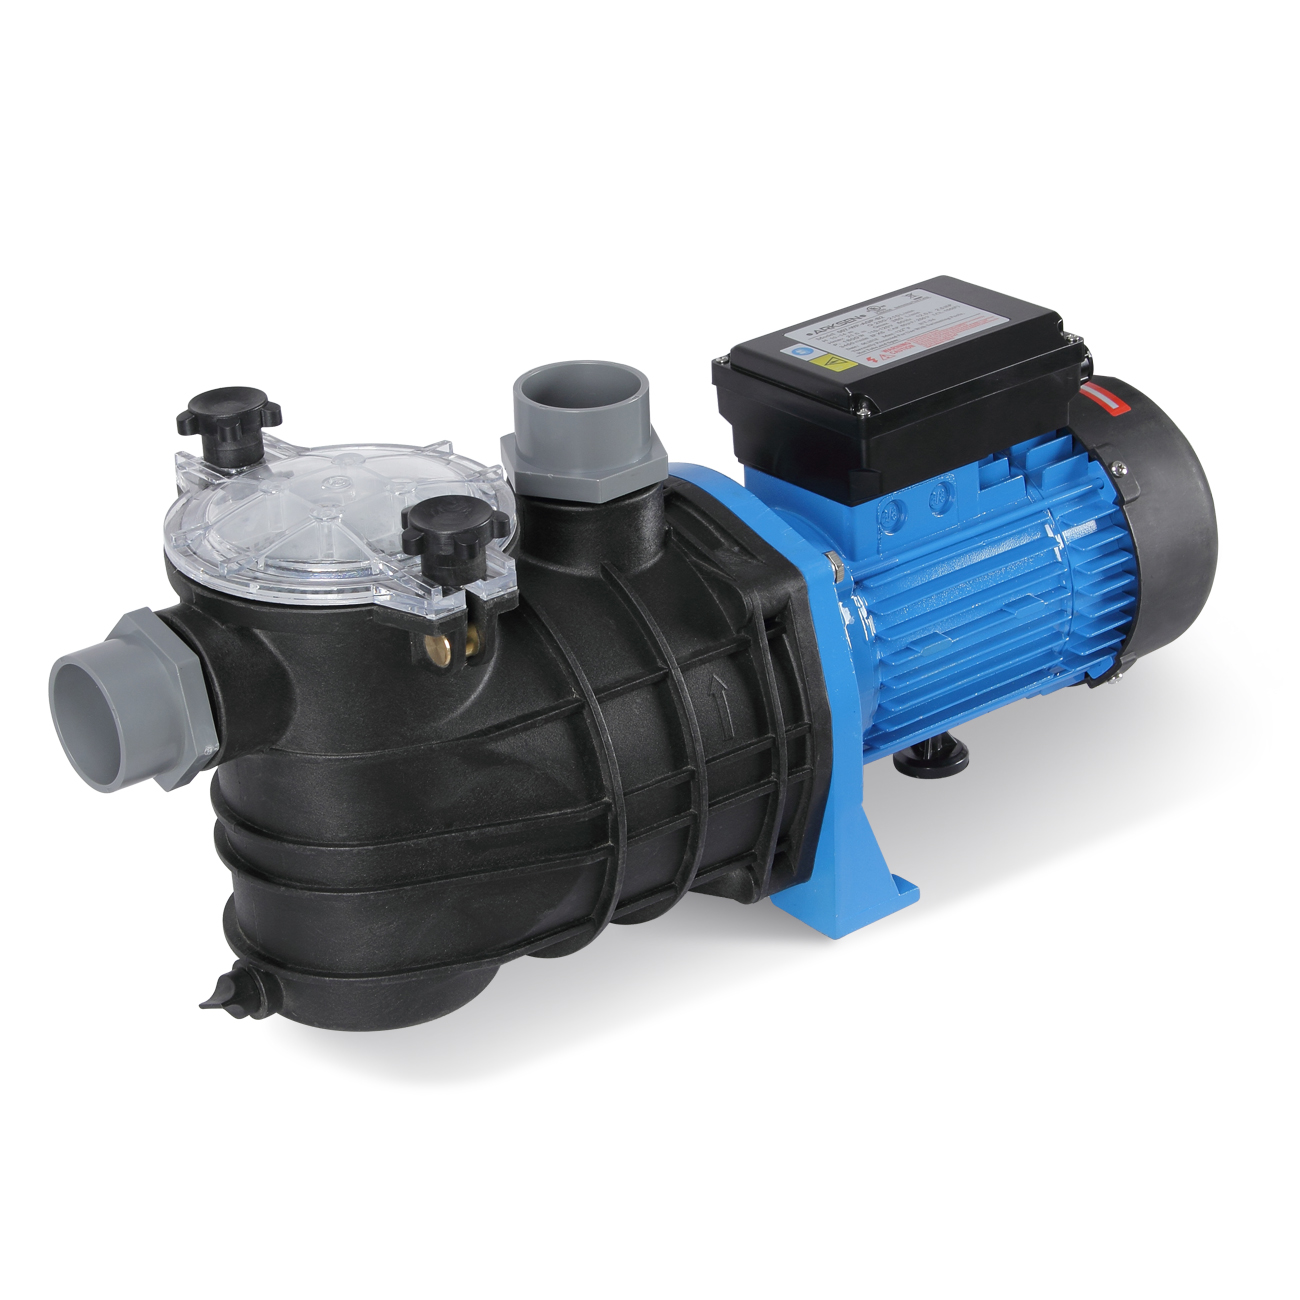 Pool Bodensauger Video Details Zu 2 5 Hp 6000gph In Ground Swimming Pool Pump W Strainer Ul Listed Single Speed